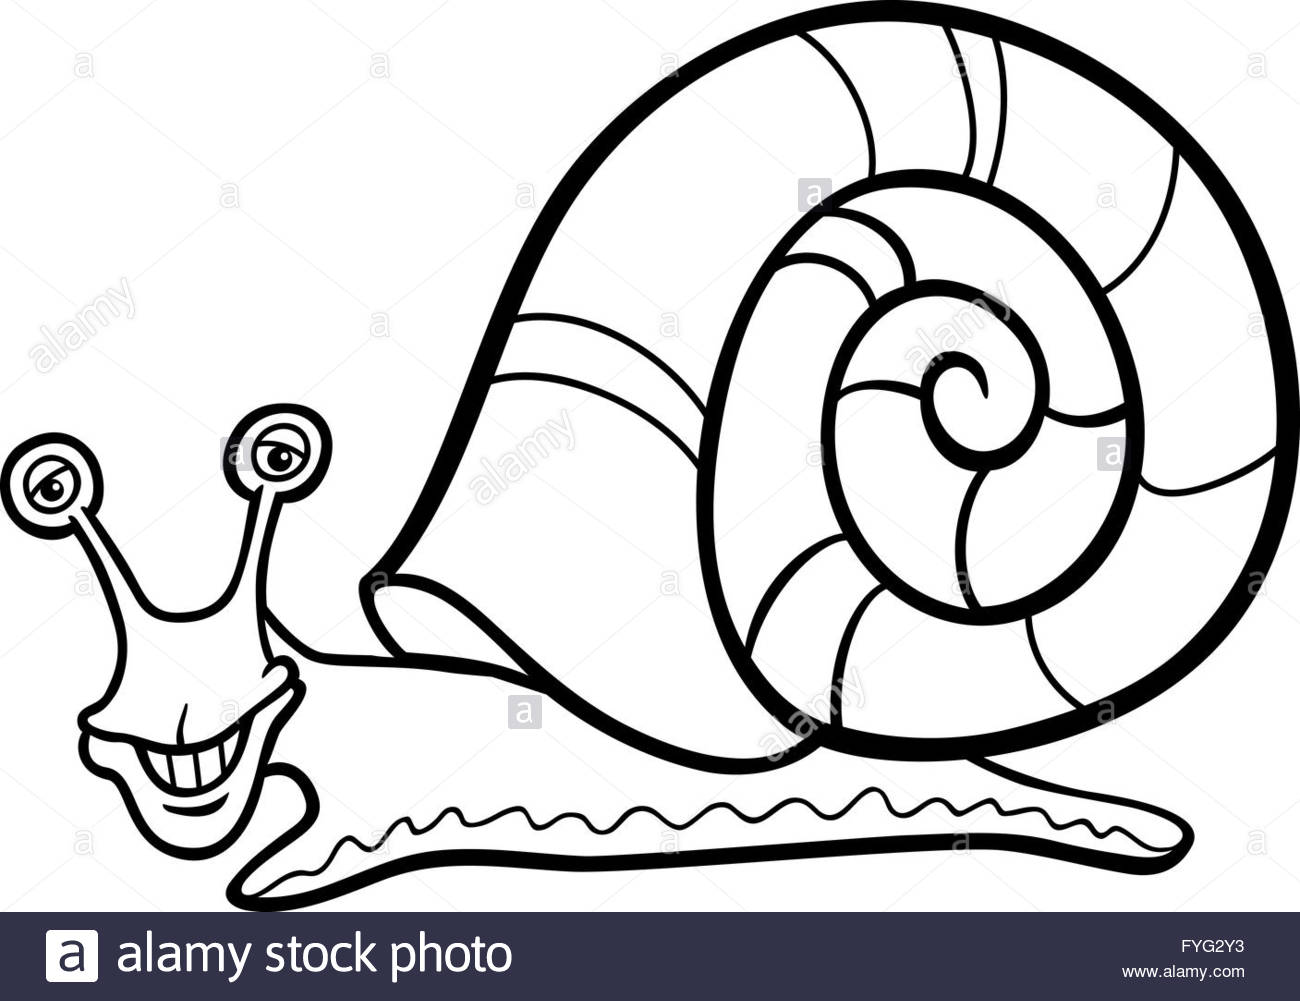 1300x1001 Snail Mollusk Cartoon For Coloring Book Stock Photo 103001111